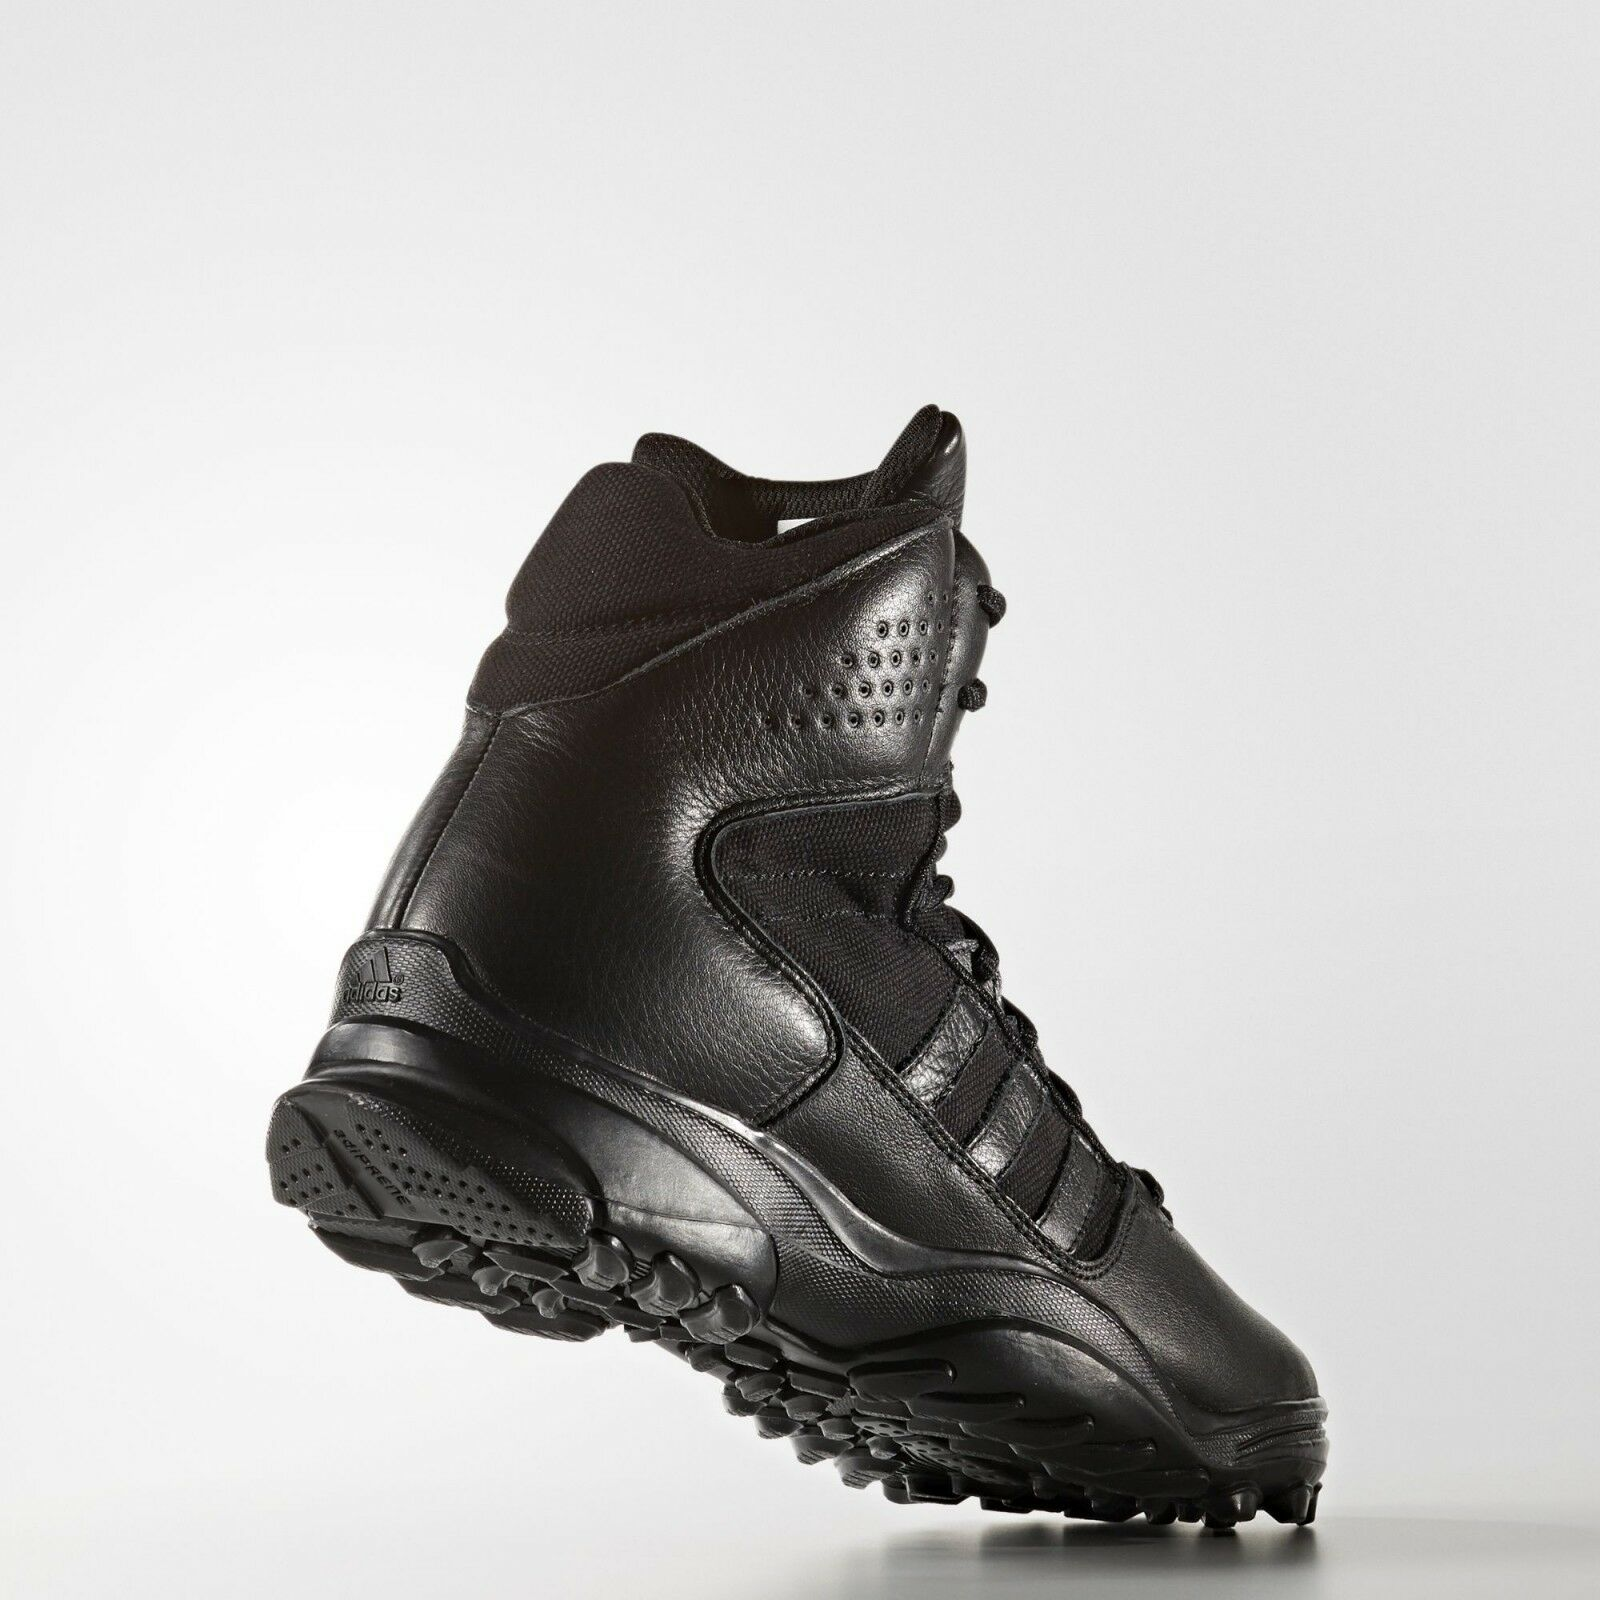 Adidas GSG 9.7 Boots Black Army Boots 9.7 Public Authority Shoes Police Adults Mens SWAT a044ae